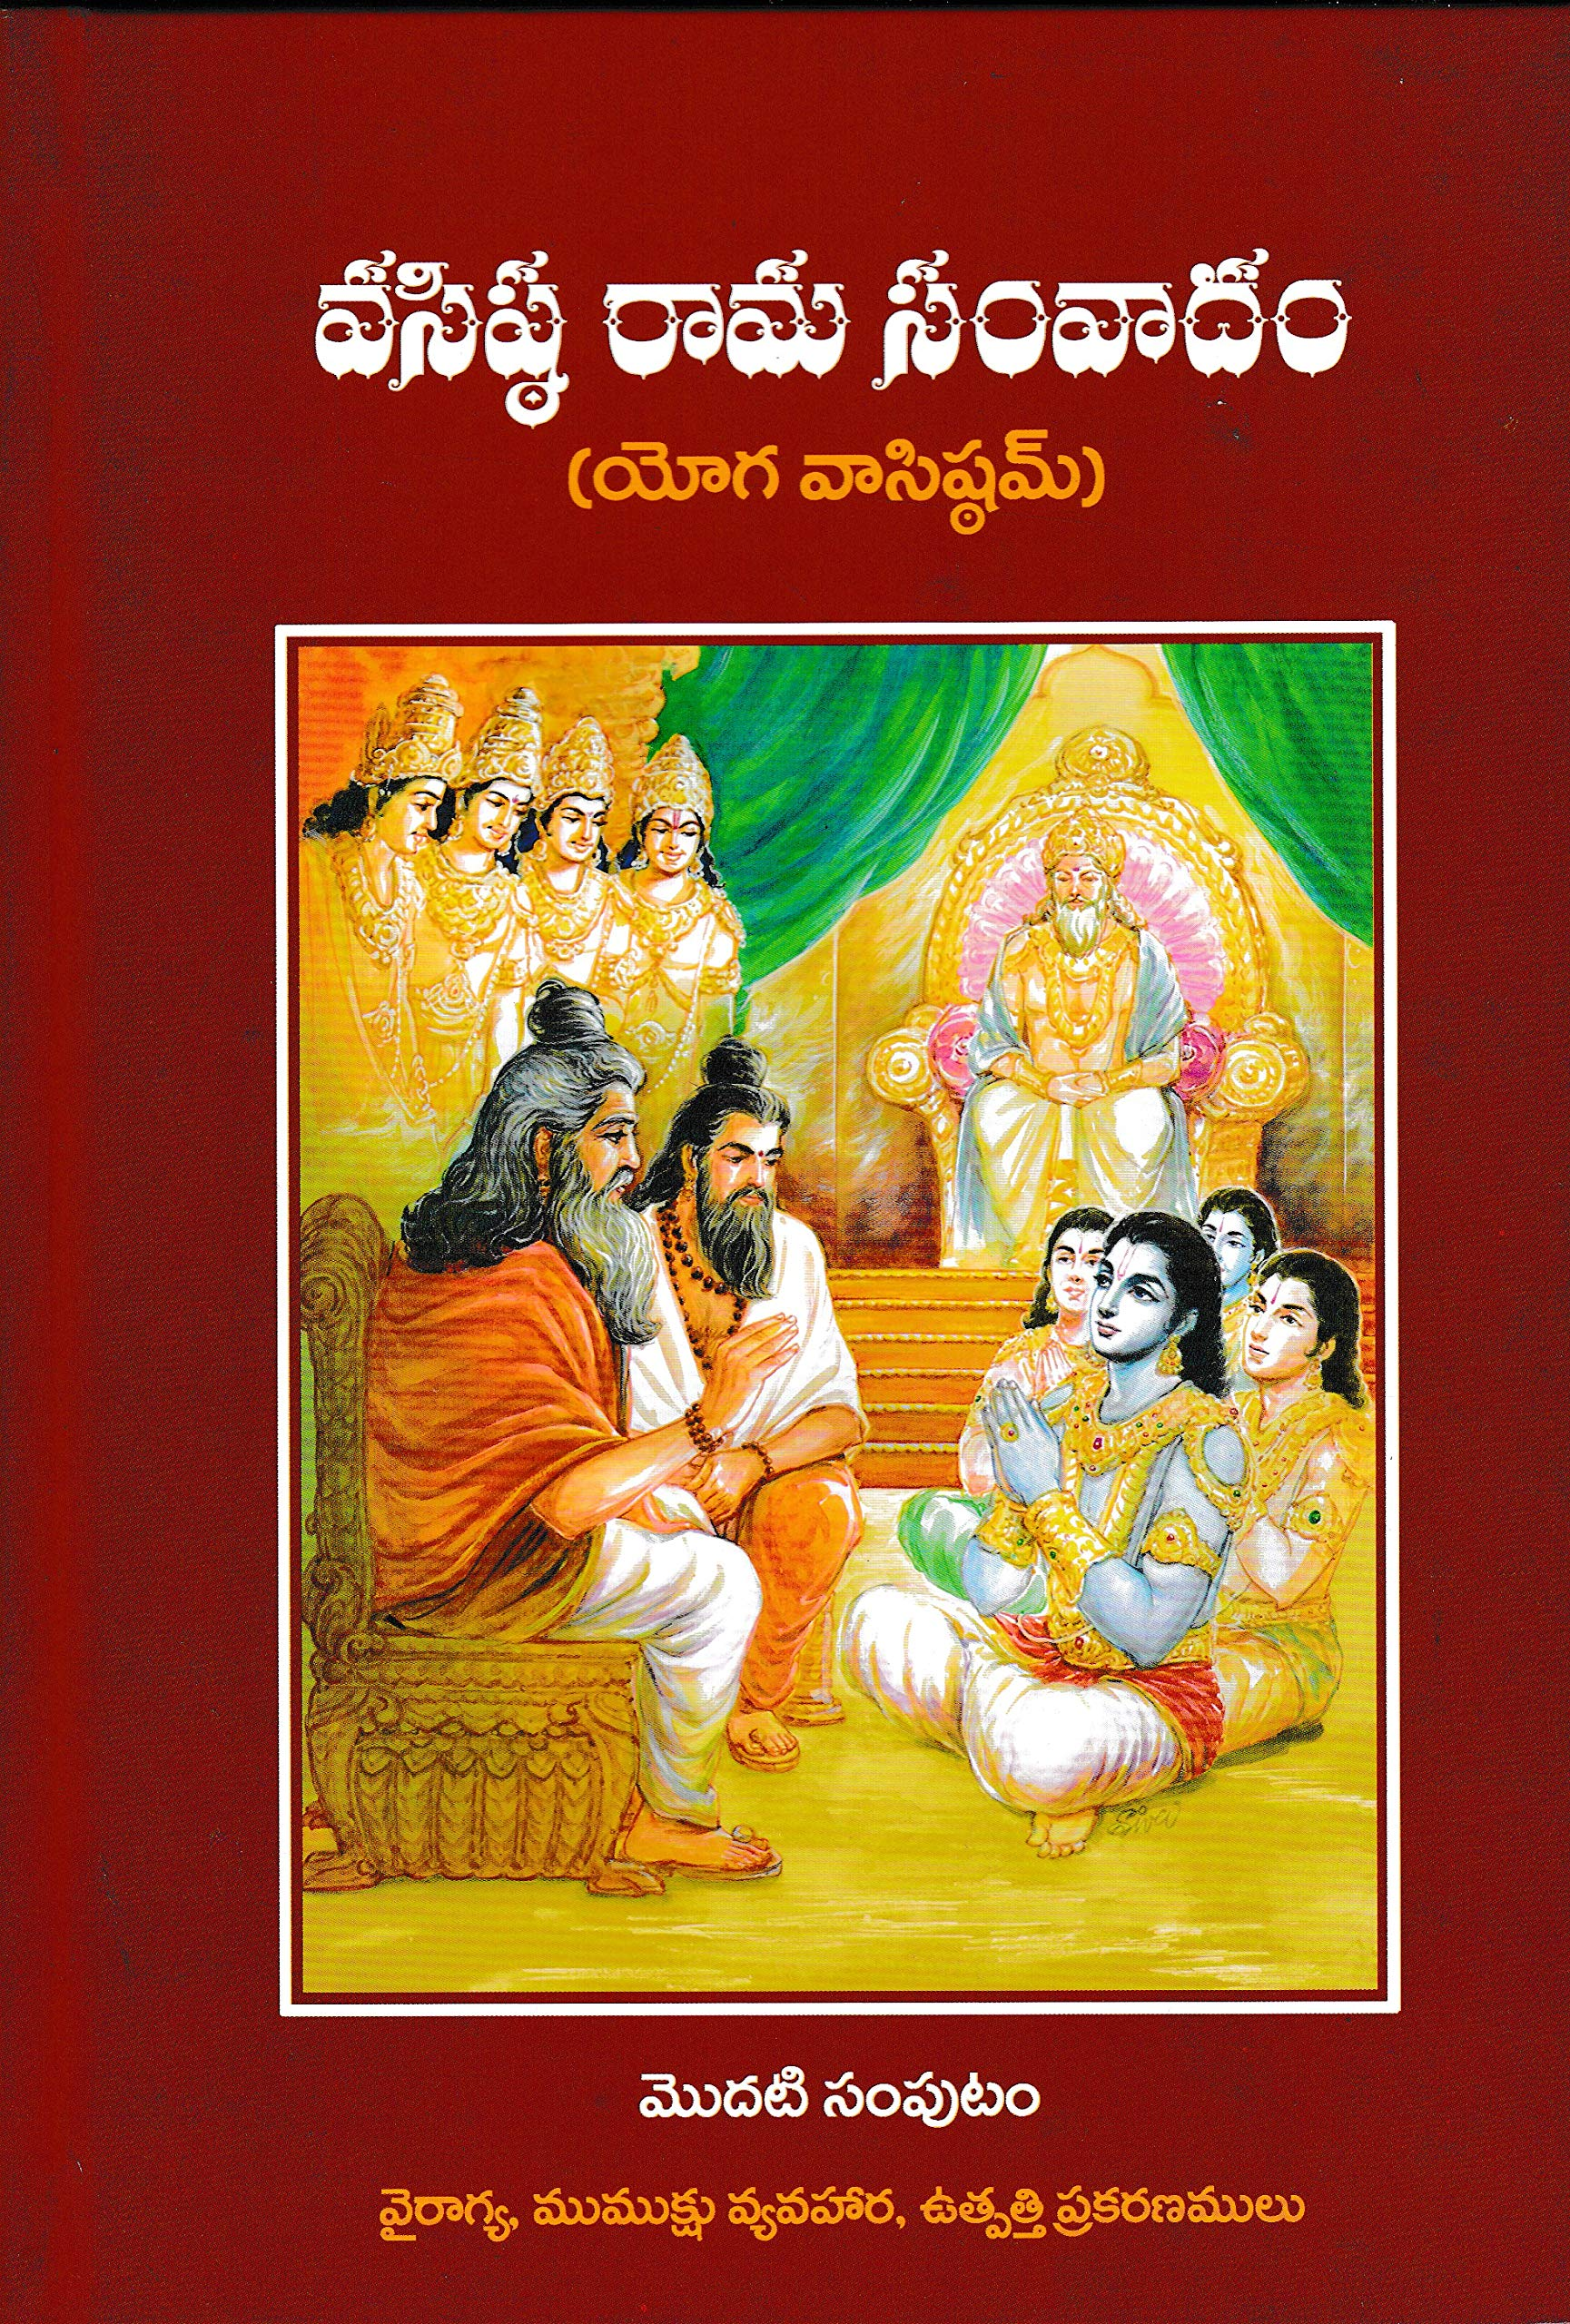 Buy Sri Vasishta Rama Samvadamu Thrid Edition Book Online At Low Prices In India Sri Vasishta Rama Samvadamu Thrid Edition Reviews Ratings Amazon In